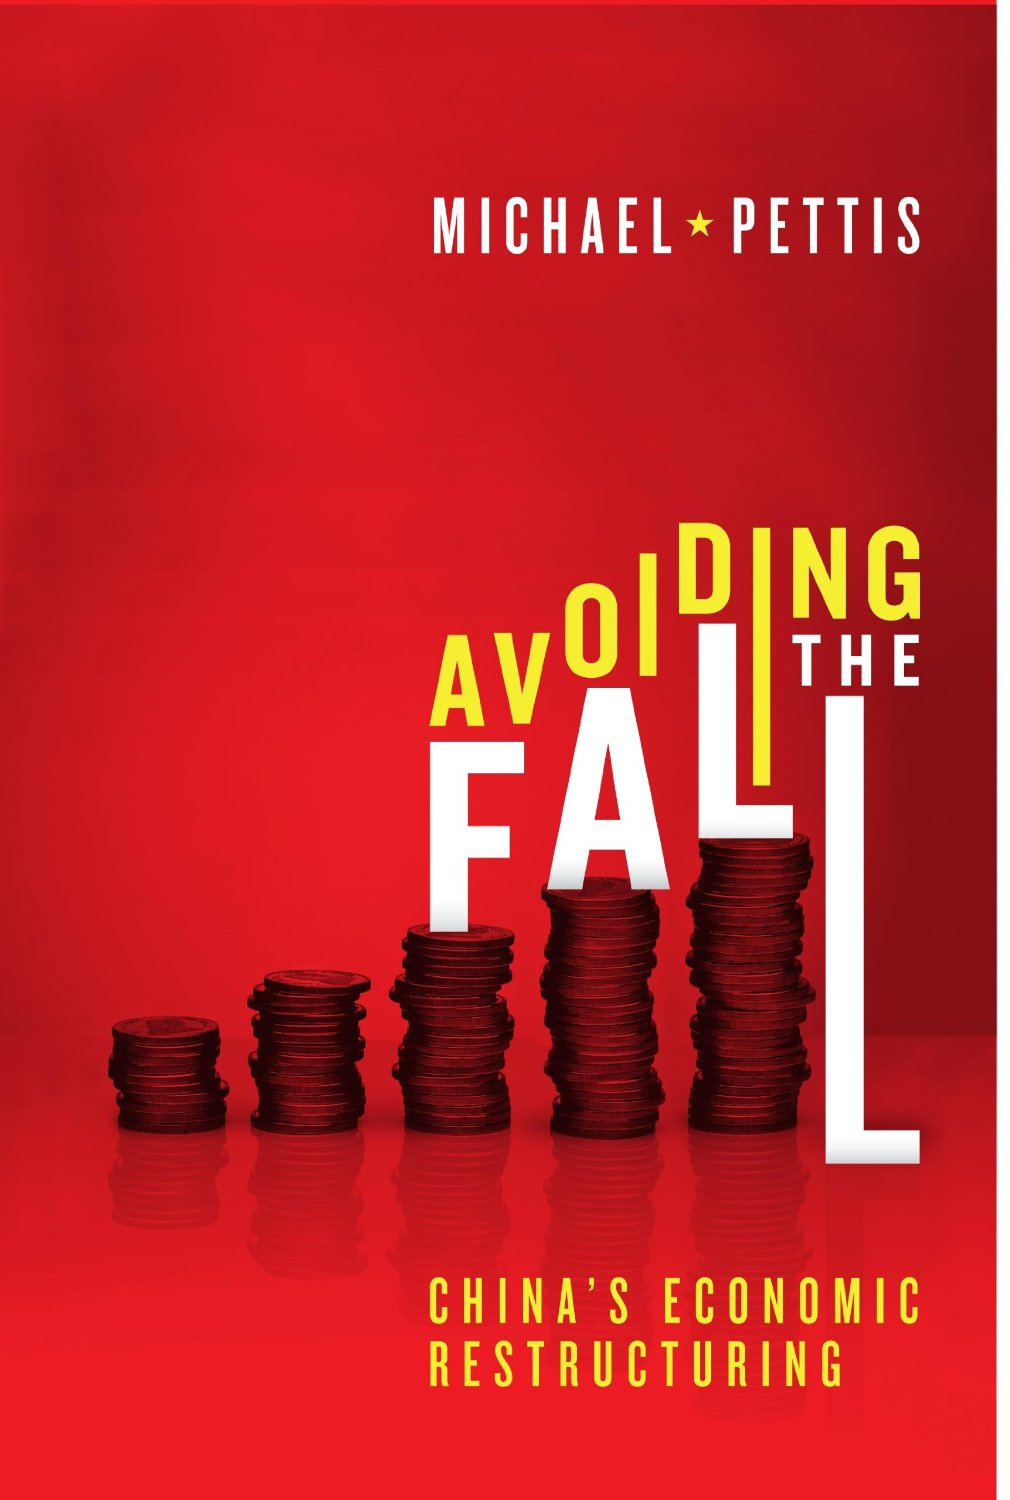 Michael Pettis: Avoiding the Fall. China's Economic Restructuring. Carnegie Endowment for International Peace 2013, 150 s.